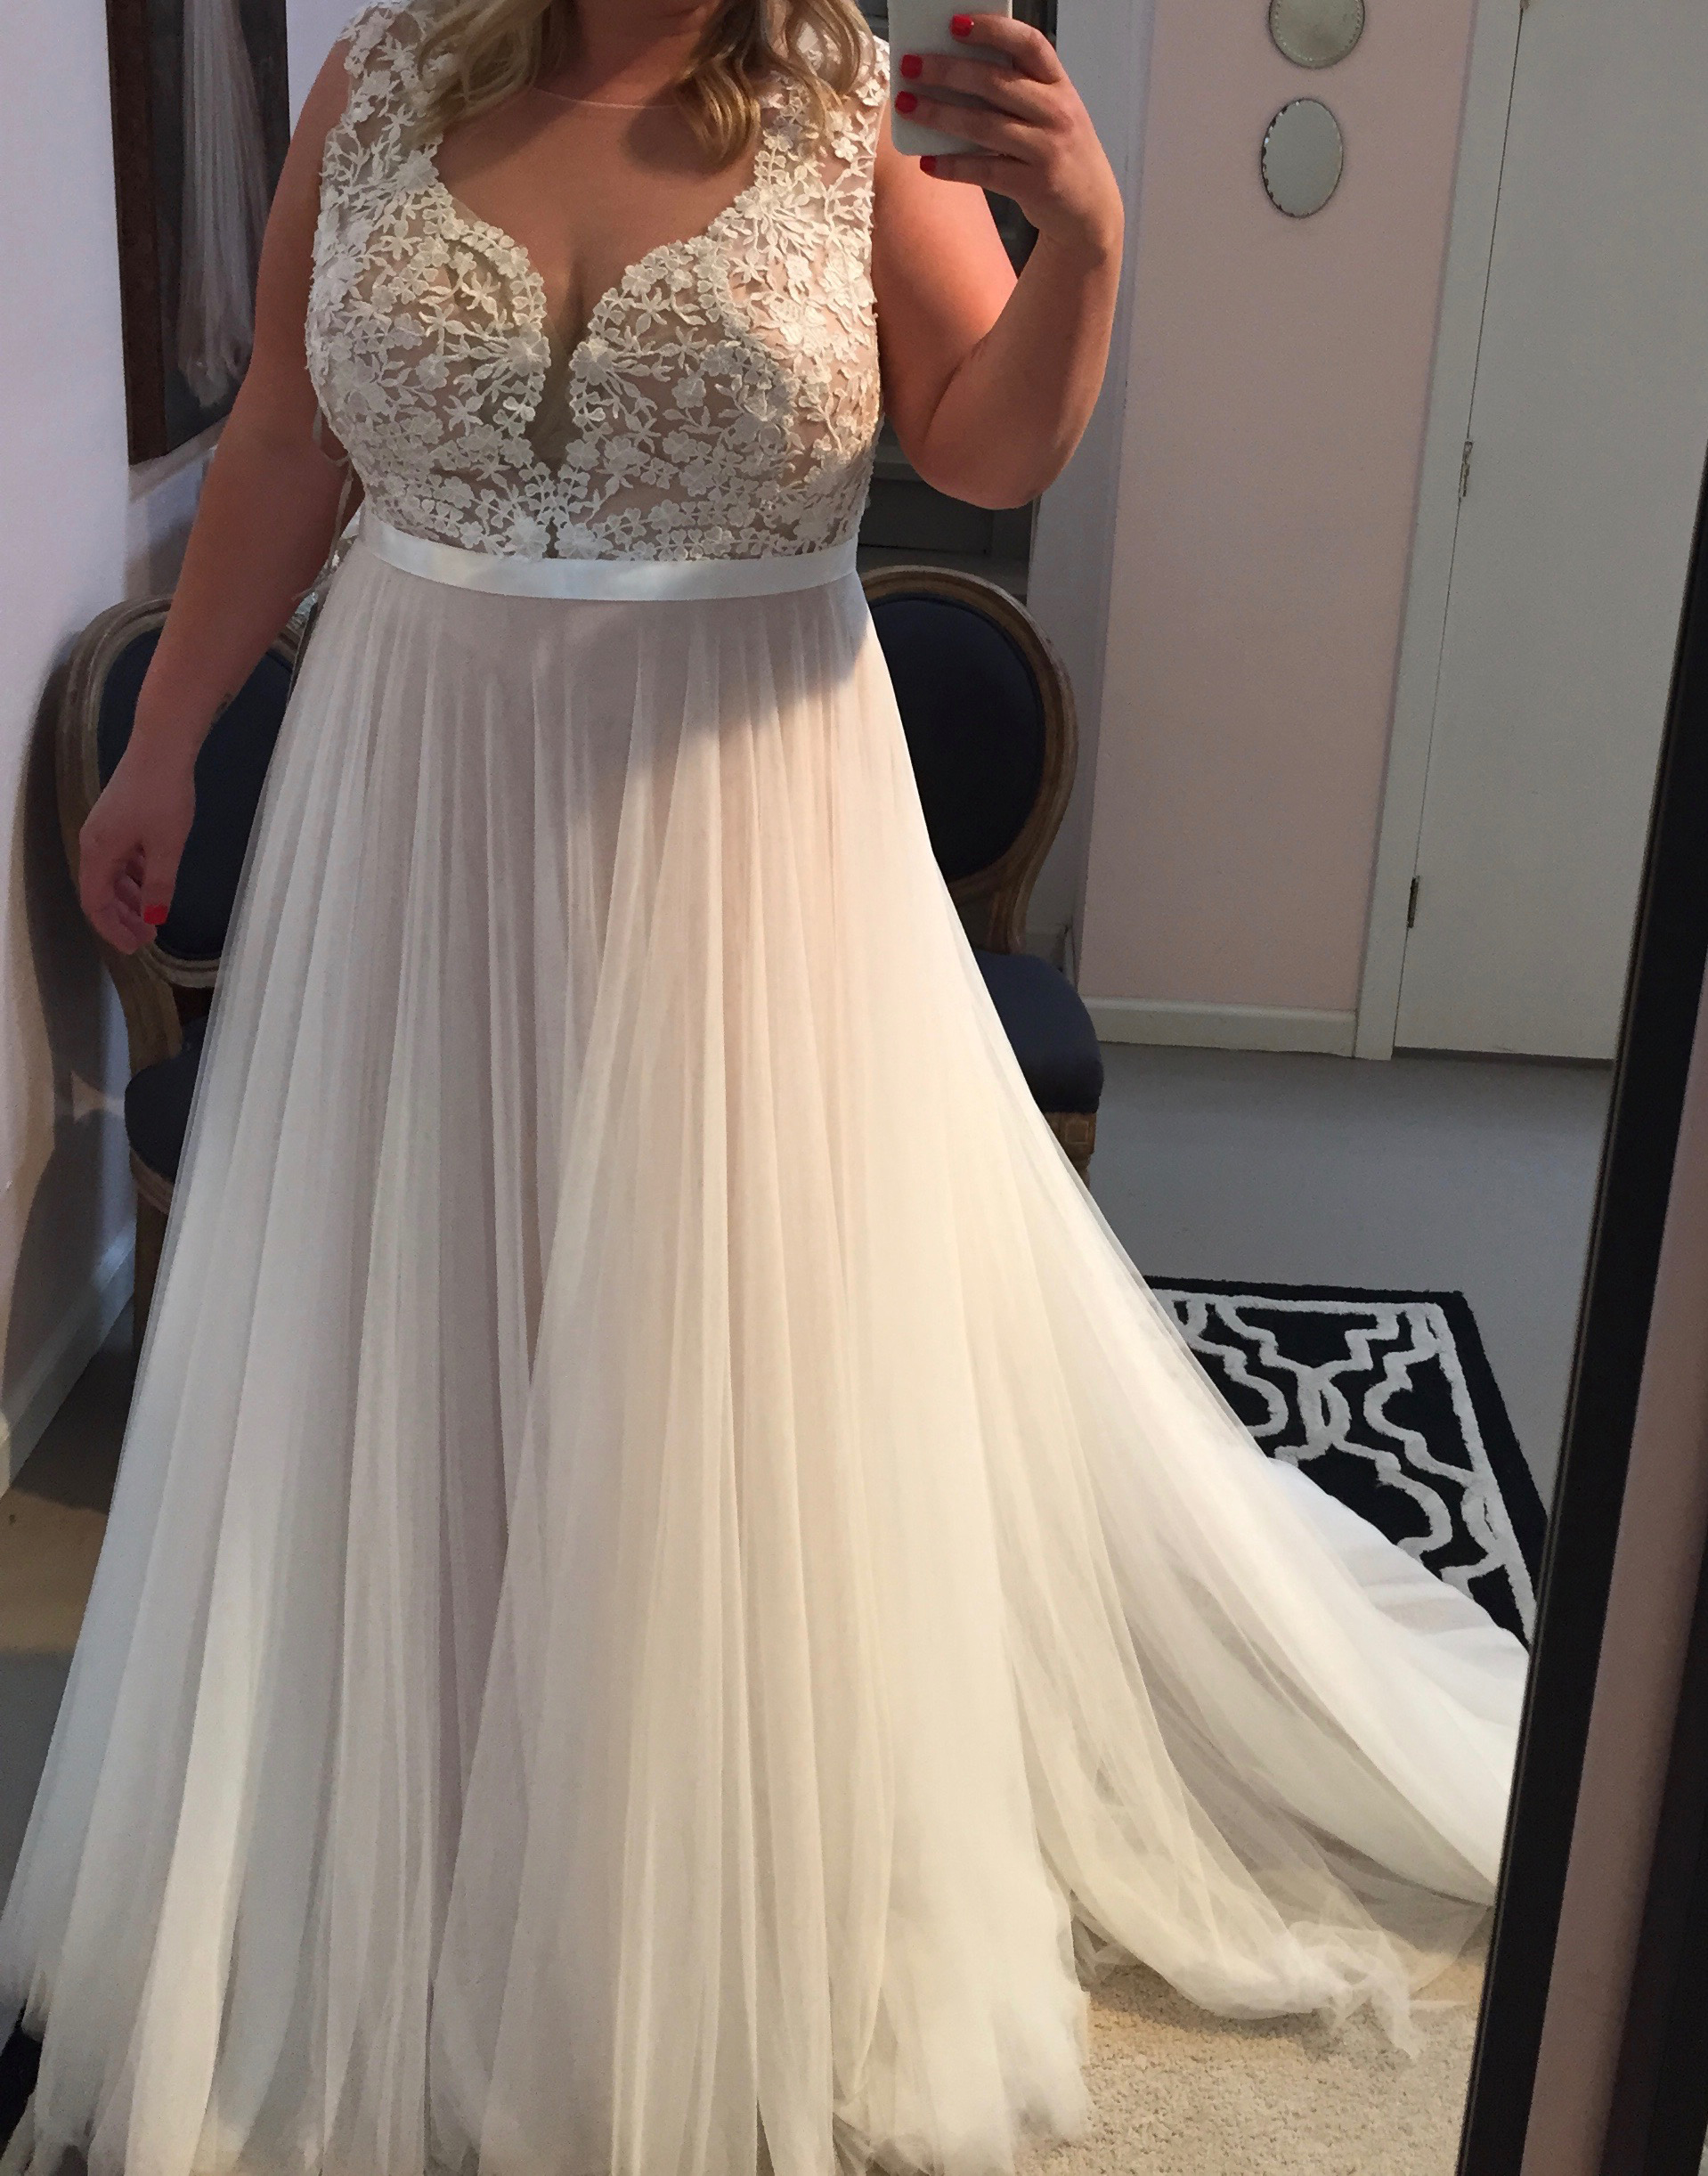 Lace Appliqued Soft Tulle Beach Wedding Dresses,Plus Size Summer Wedding  Dresses,APD2413 from DiyDresses